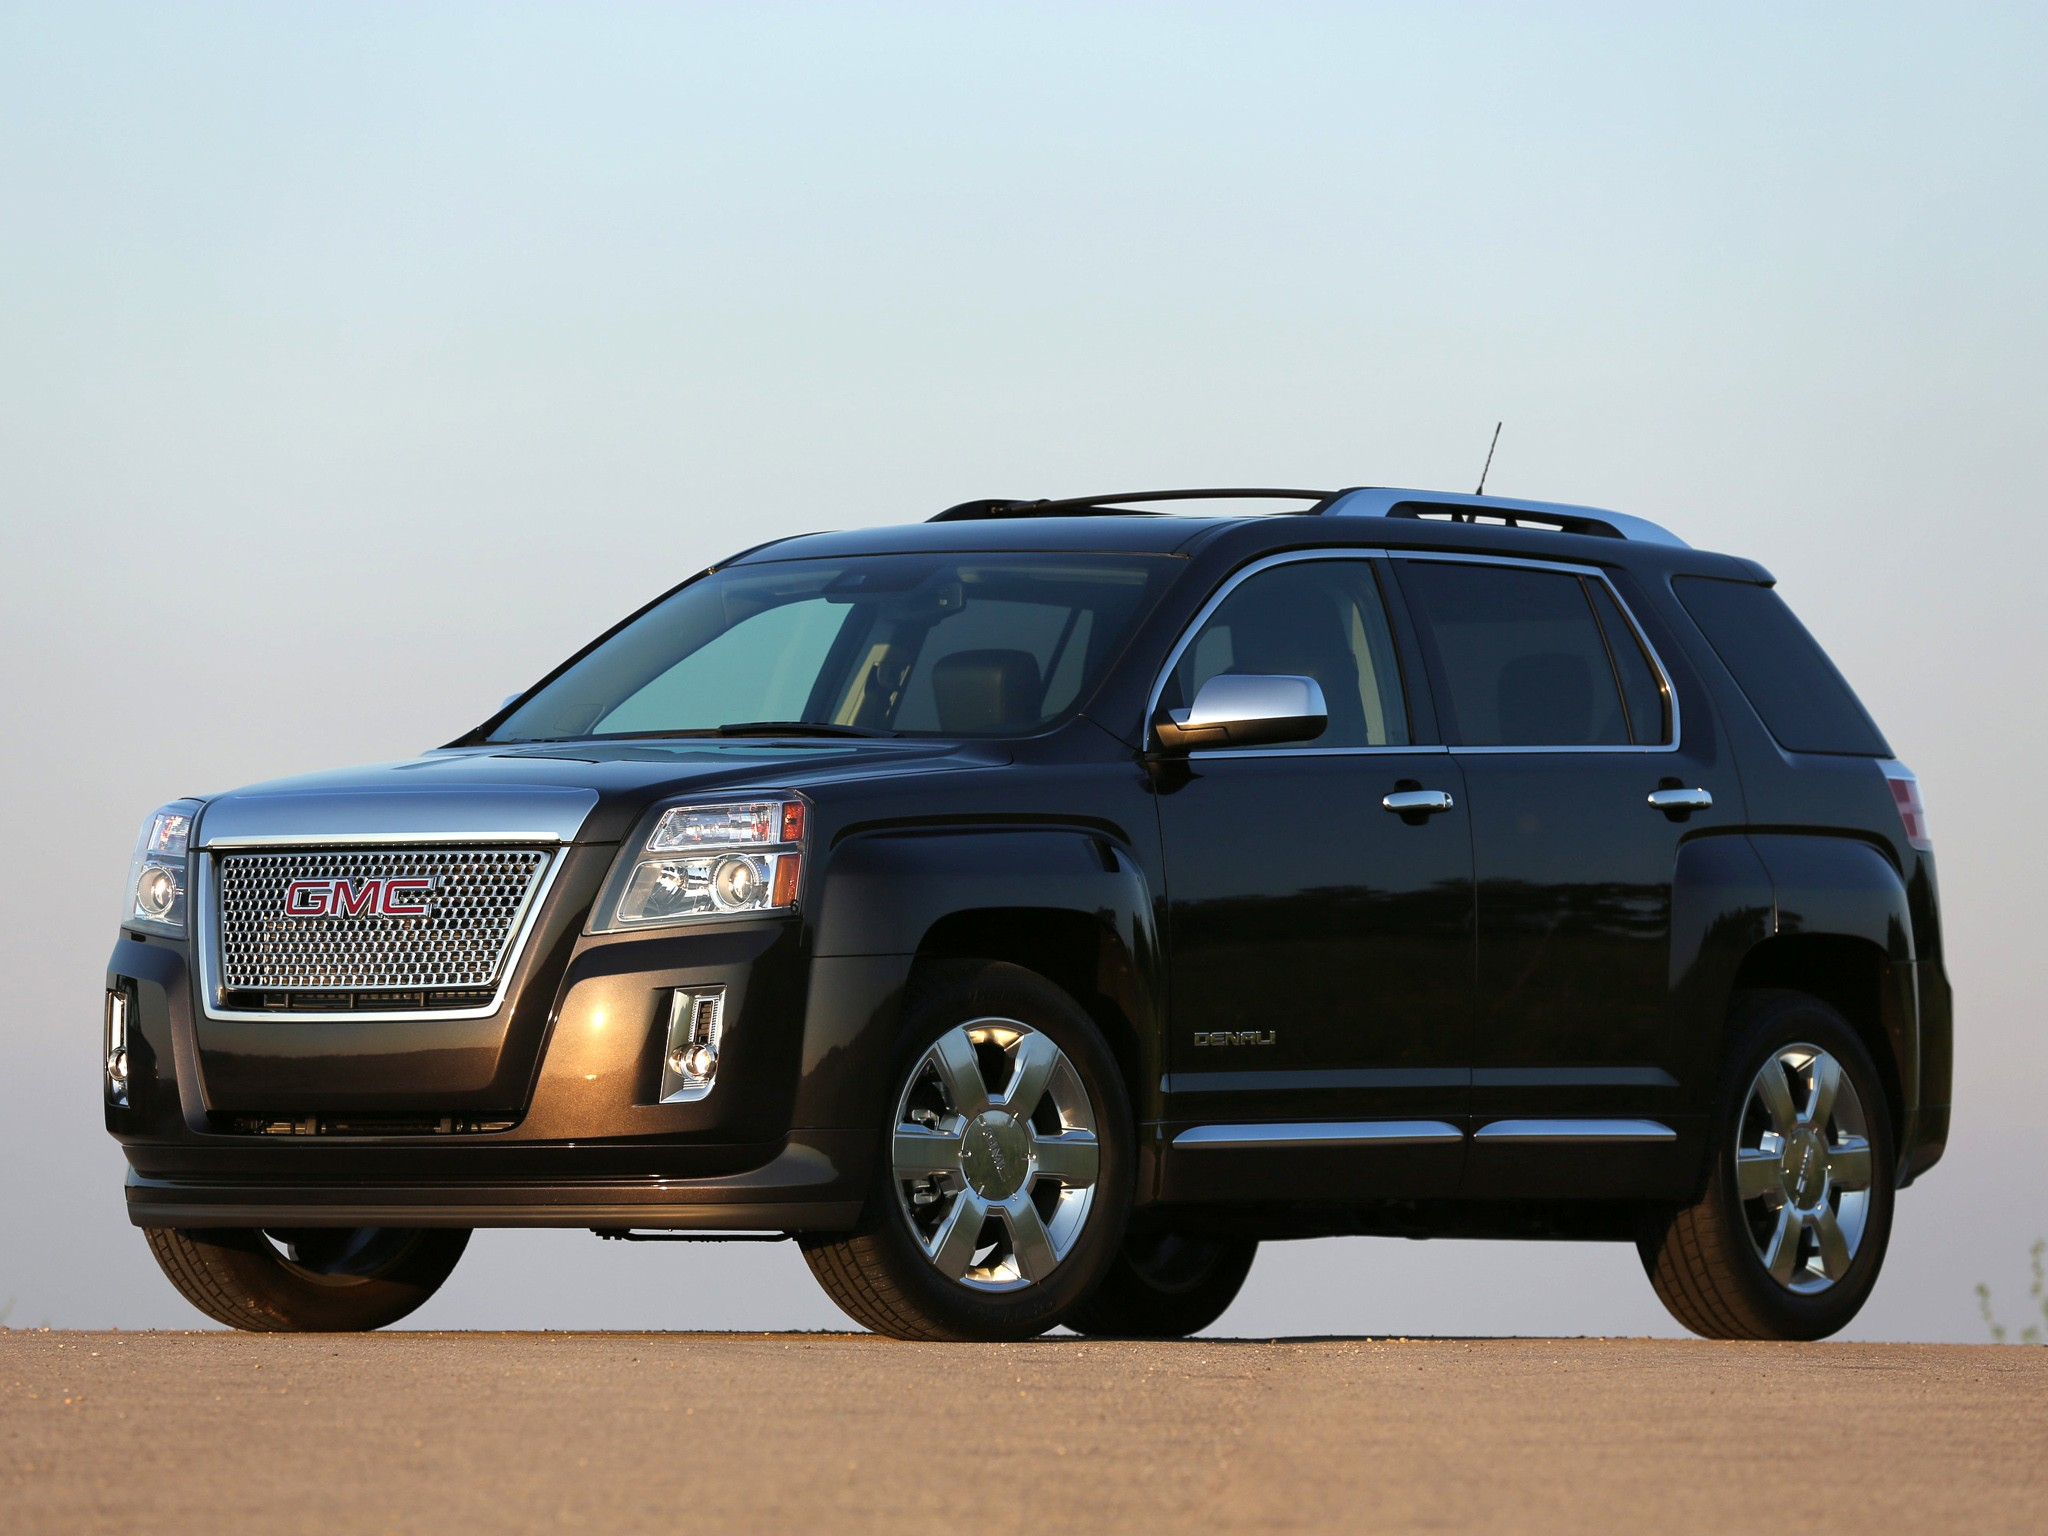 Gmc Terrain Specs Amp Photos 2009 2010 2011 2012 2013 2014 2015 2016 Autoevolution